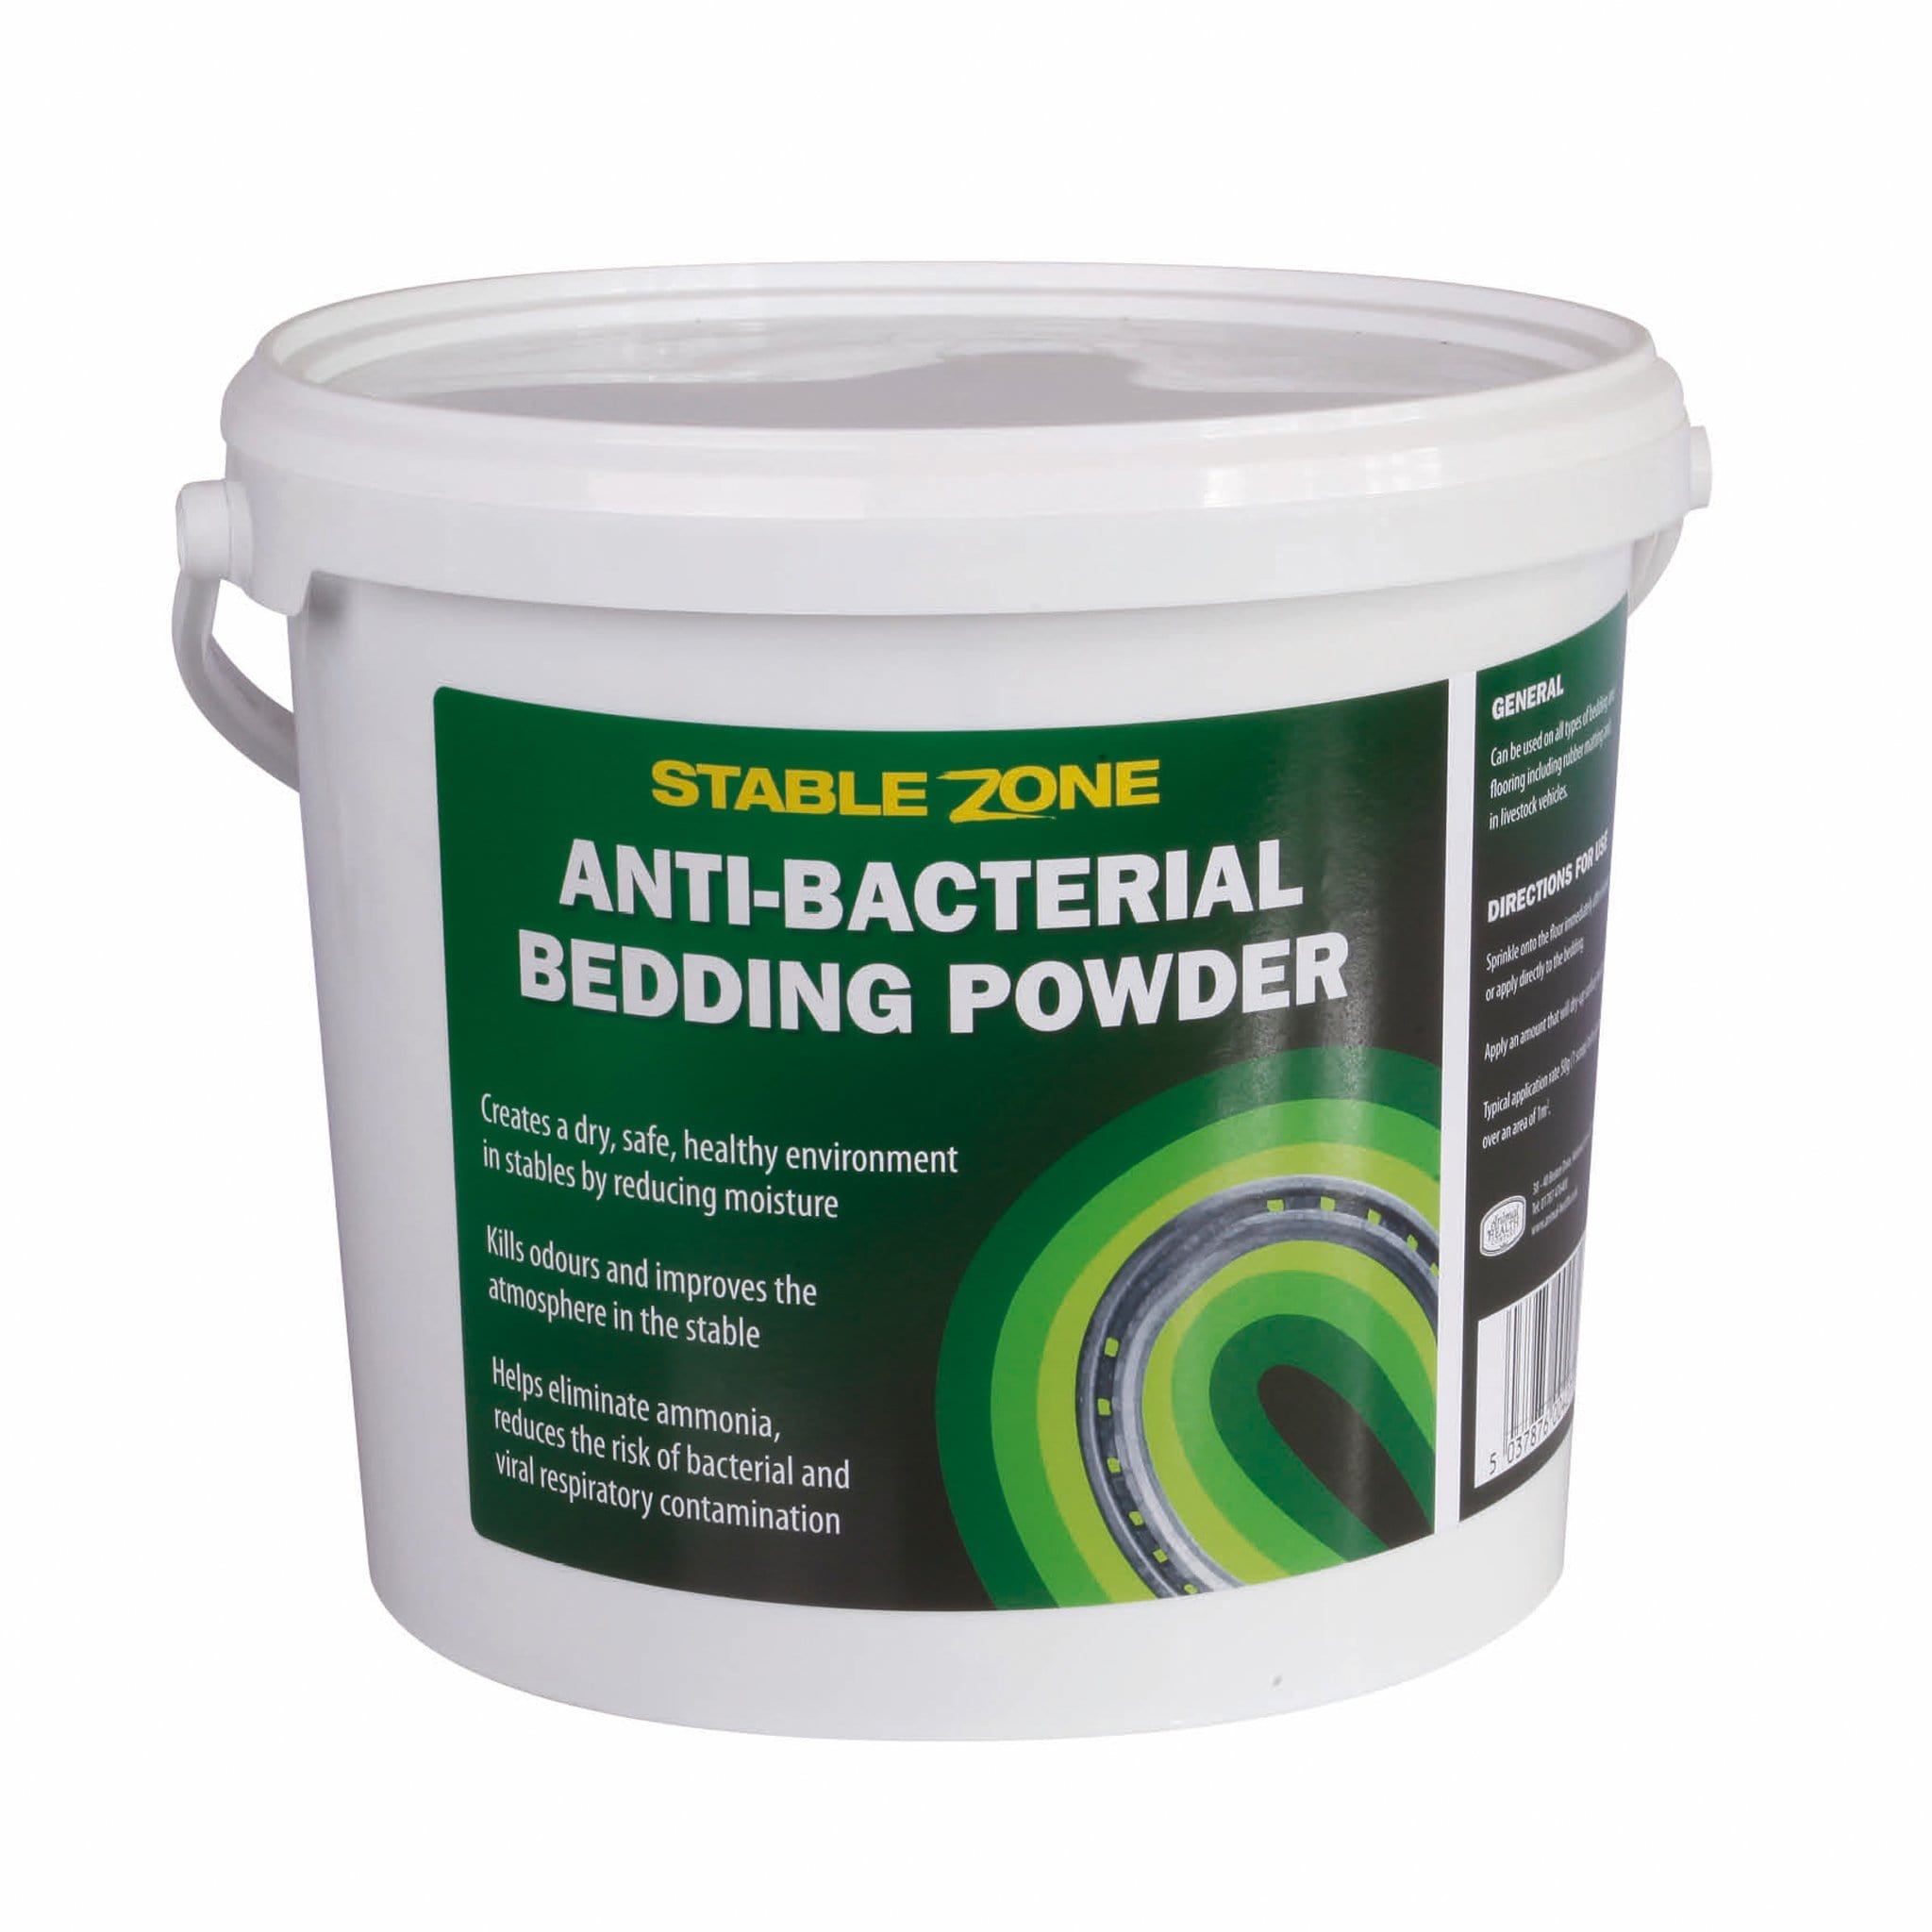 Animal Health Company Stablezone Antibacterial Bedding Powder 7389